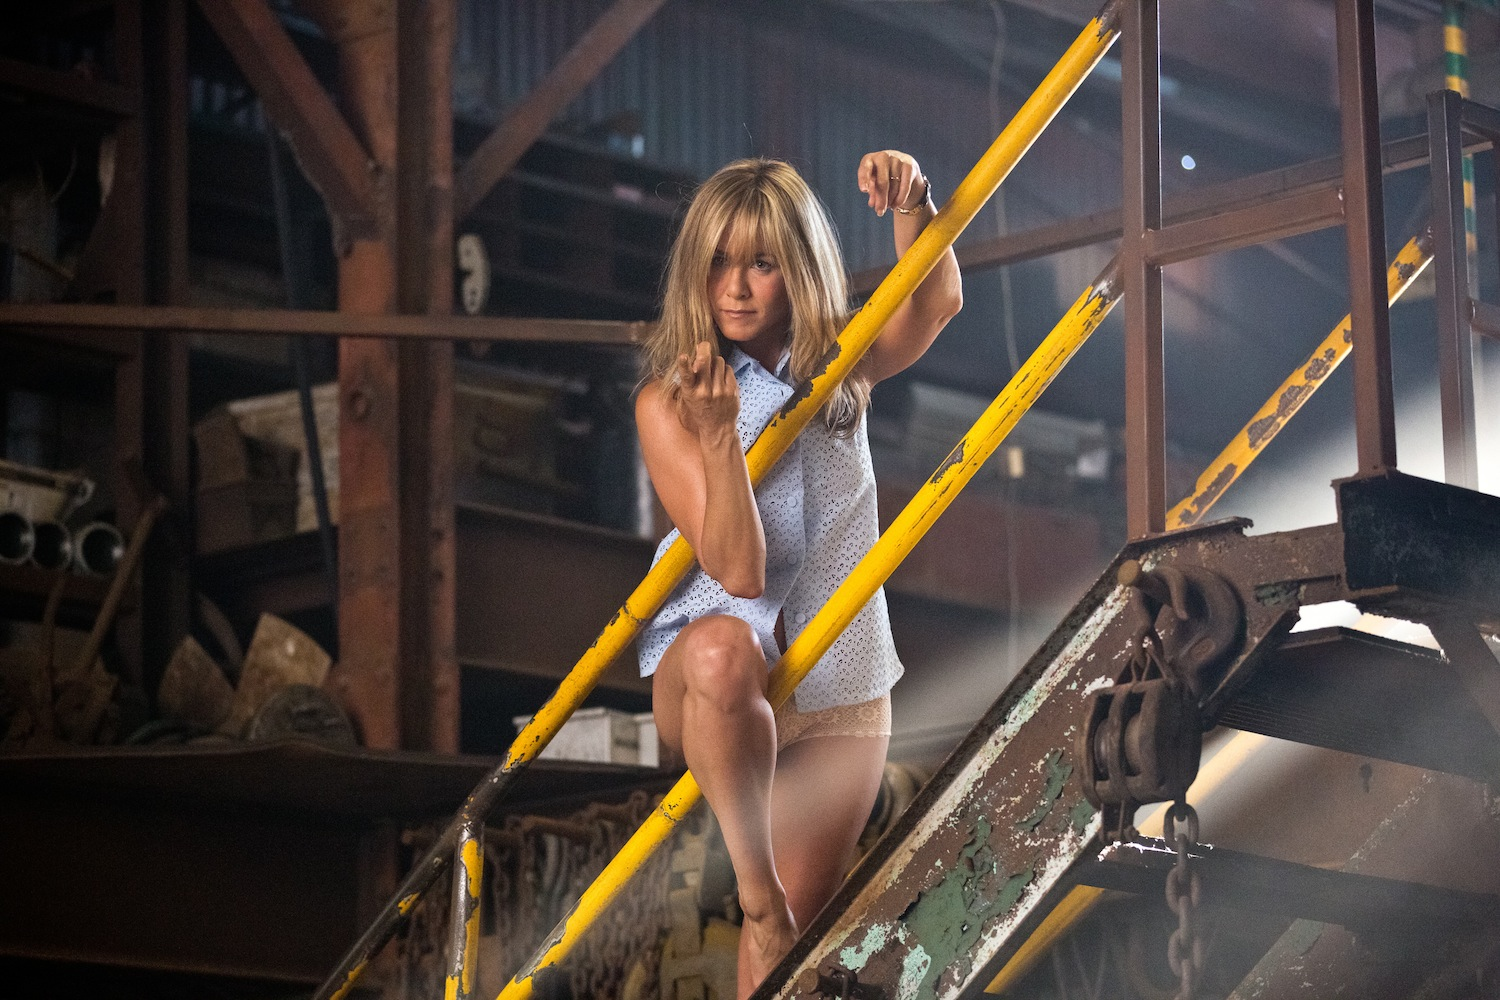 We Re The Millers 5 Questions With Aniston And Sudeikis